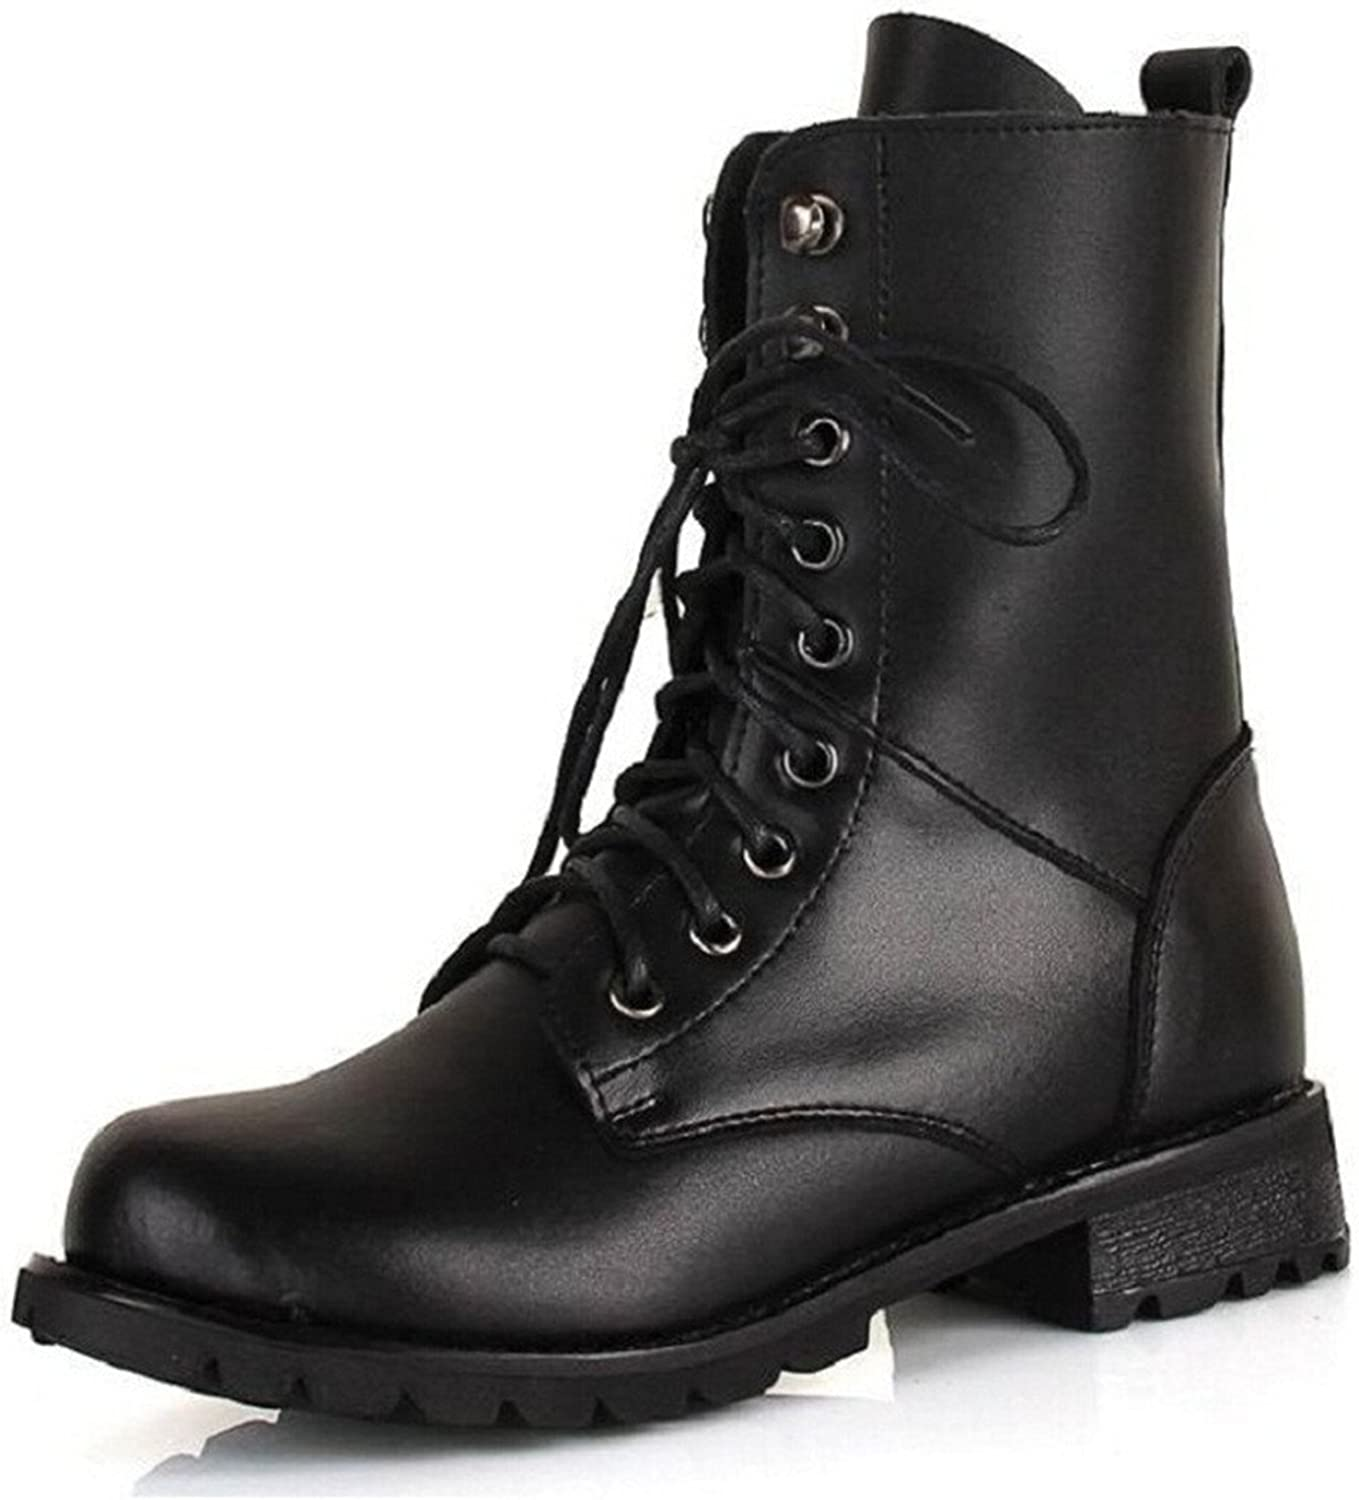 Henraly Big Size Women Riding Boots Black Pu Mid-Calf Boots Rivet Adults Maritn Boots for Women 35